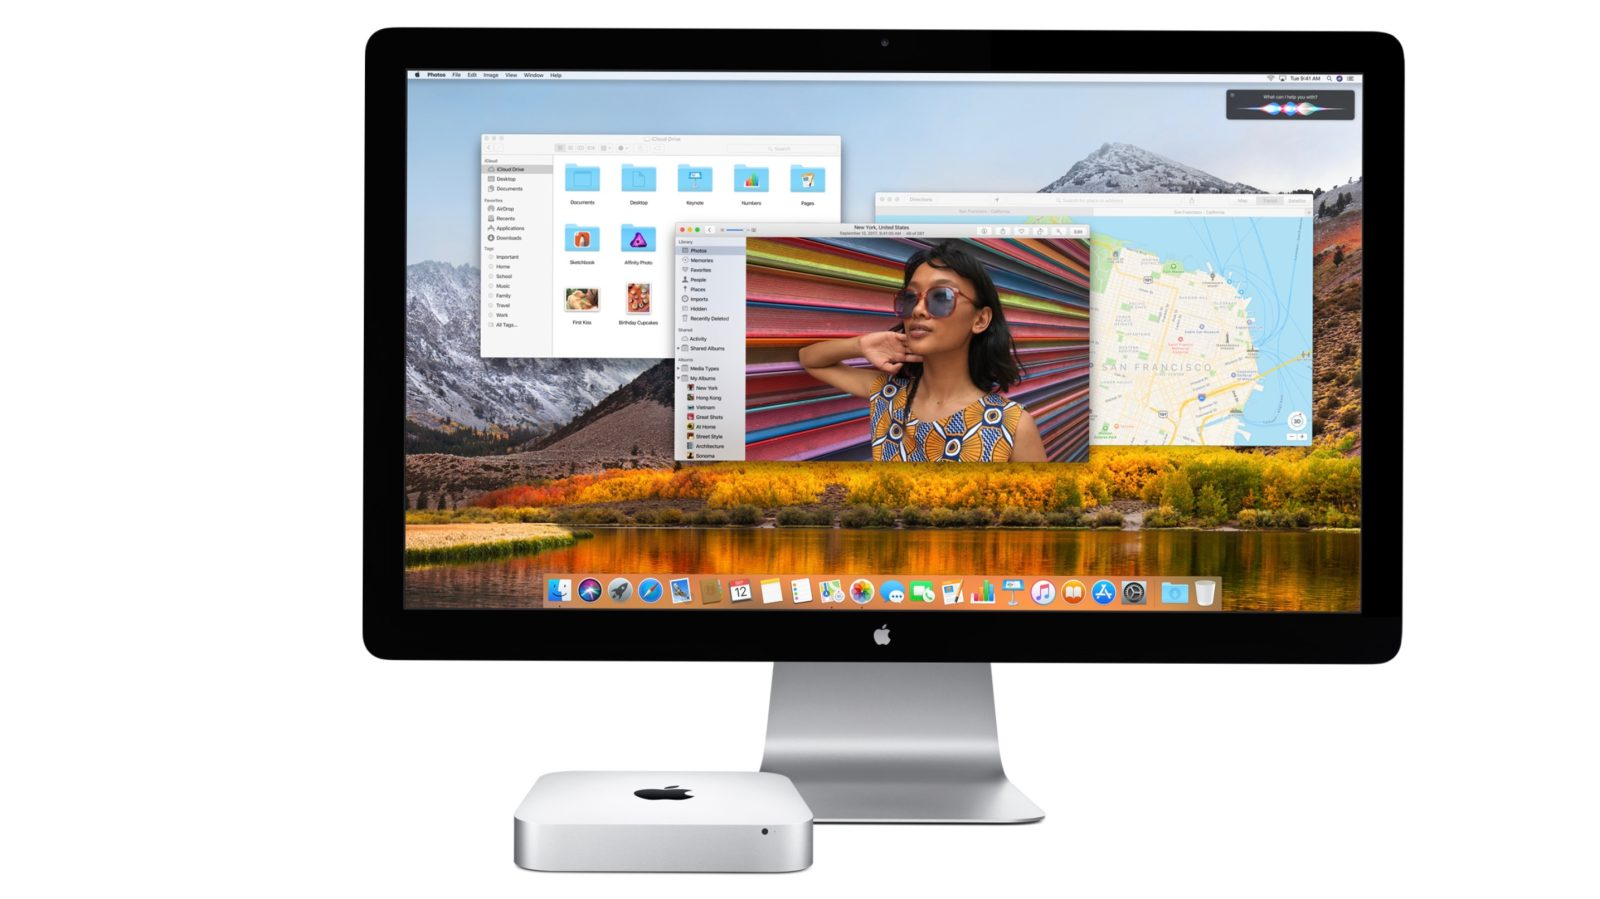 new concept 60dbb cc272 Bloomberg: Mac mini update this year will target pro users, likely ...